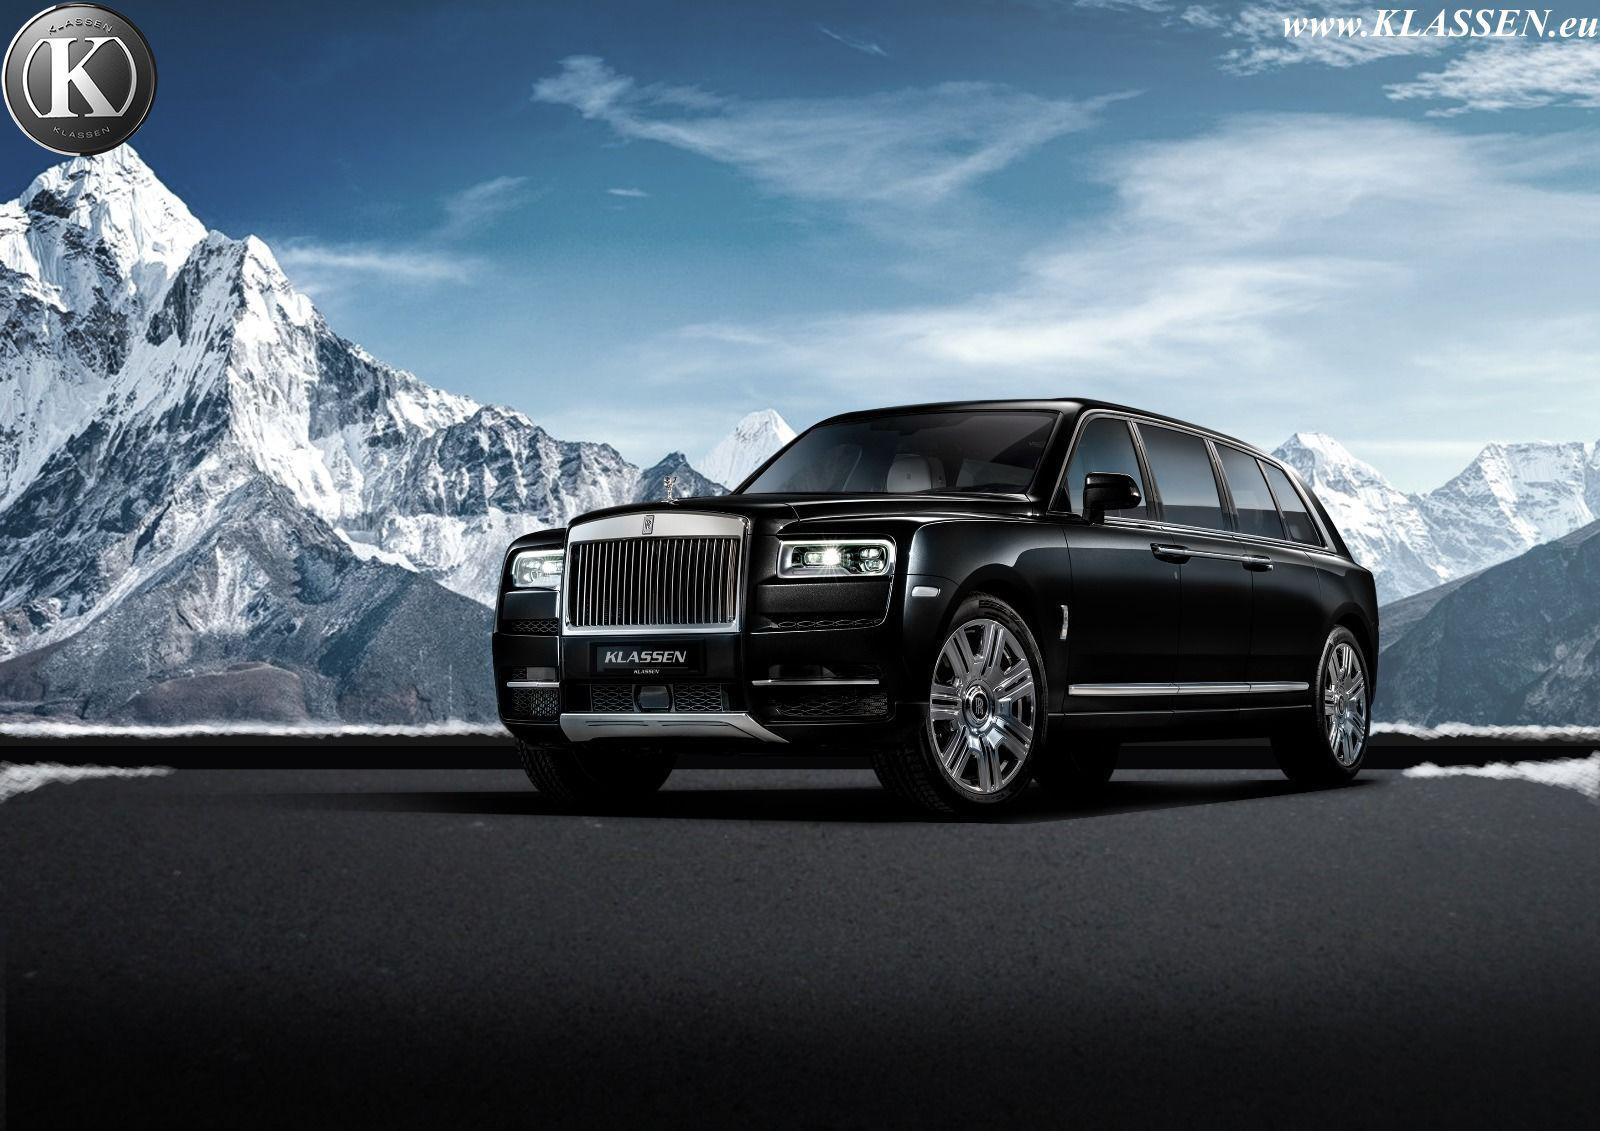 Someone Turned the Rolls-Royce SUV Into a $2 Million Limousine